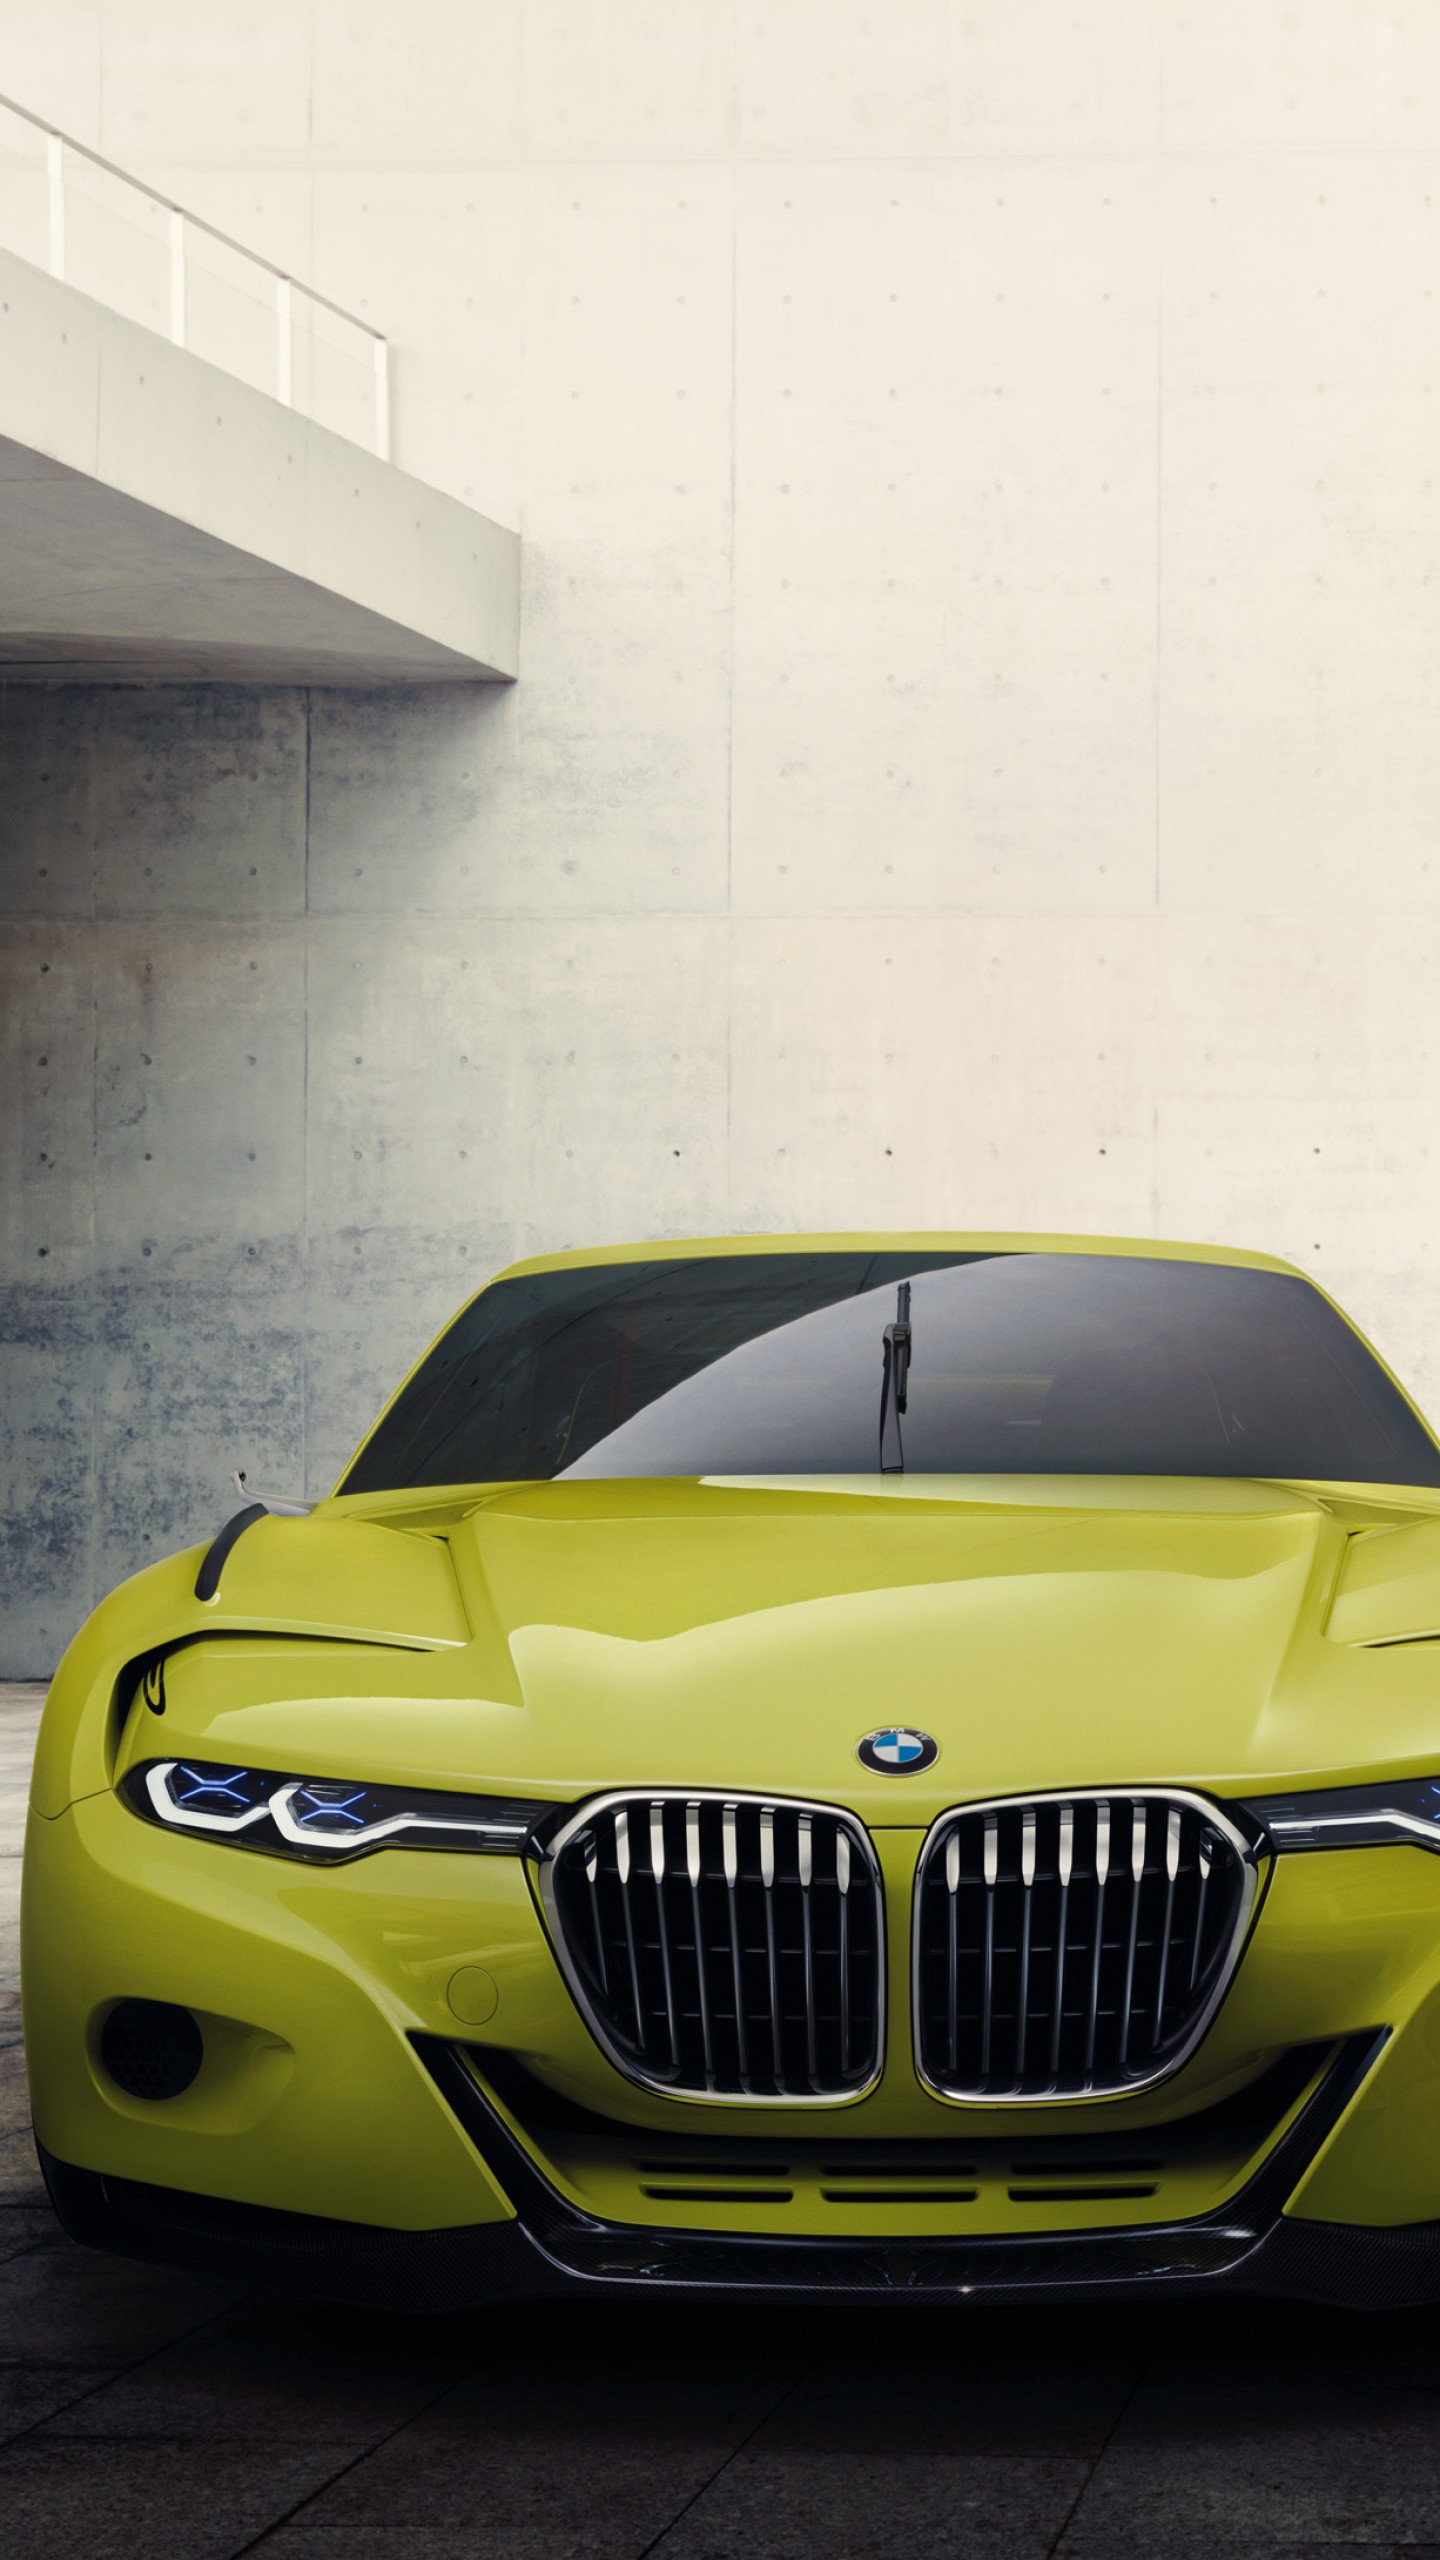 1920x1080 Hd Wallpapers Girls Wallpaper Bmw 3 0 Csl Yellow Sports Car Bmw Xdrive